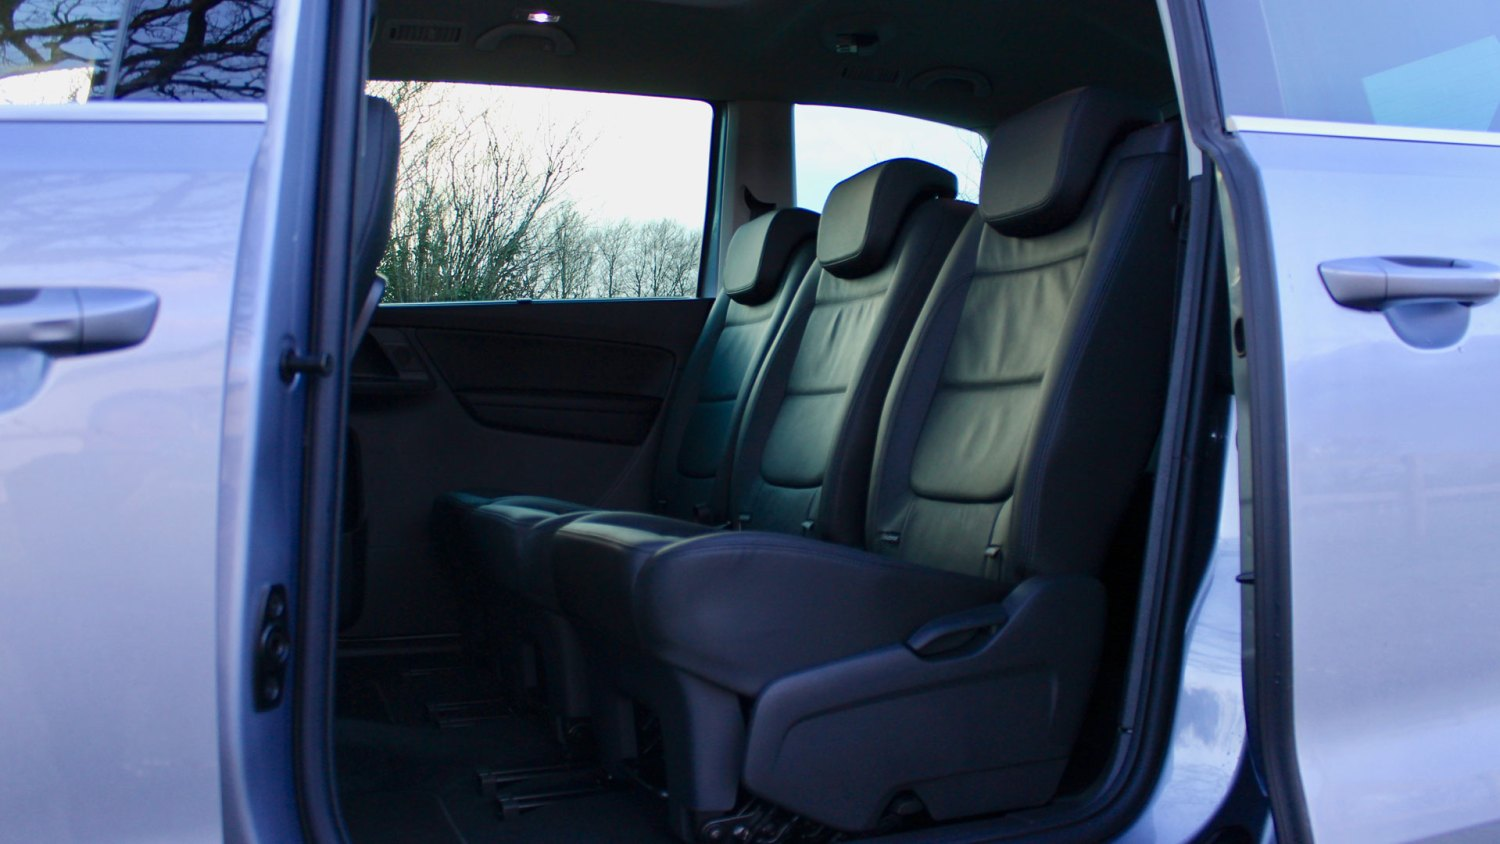 2019 Seat Alhambra Review A Seven Up Mpv With Just Enough